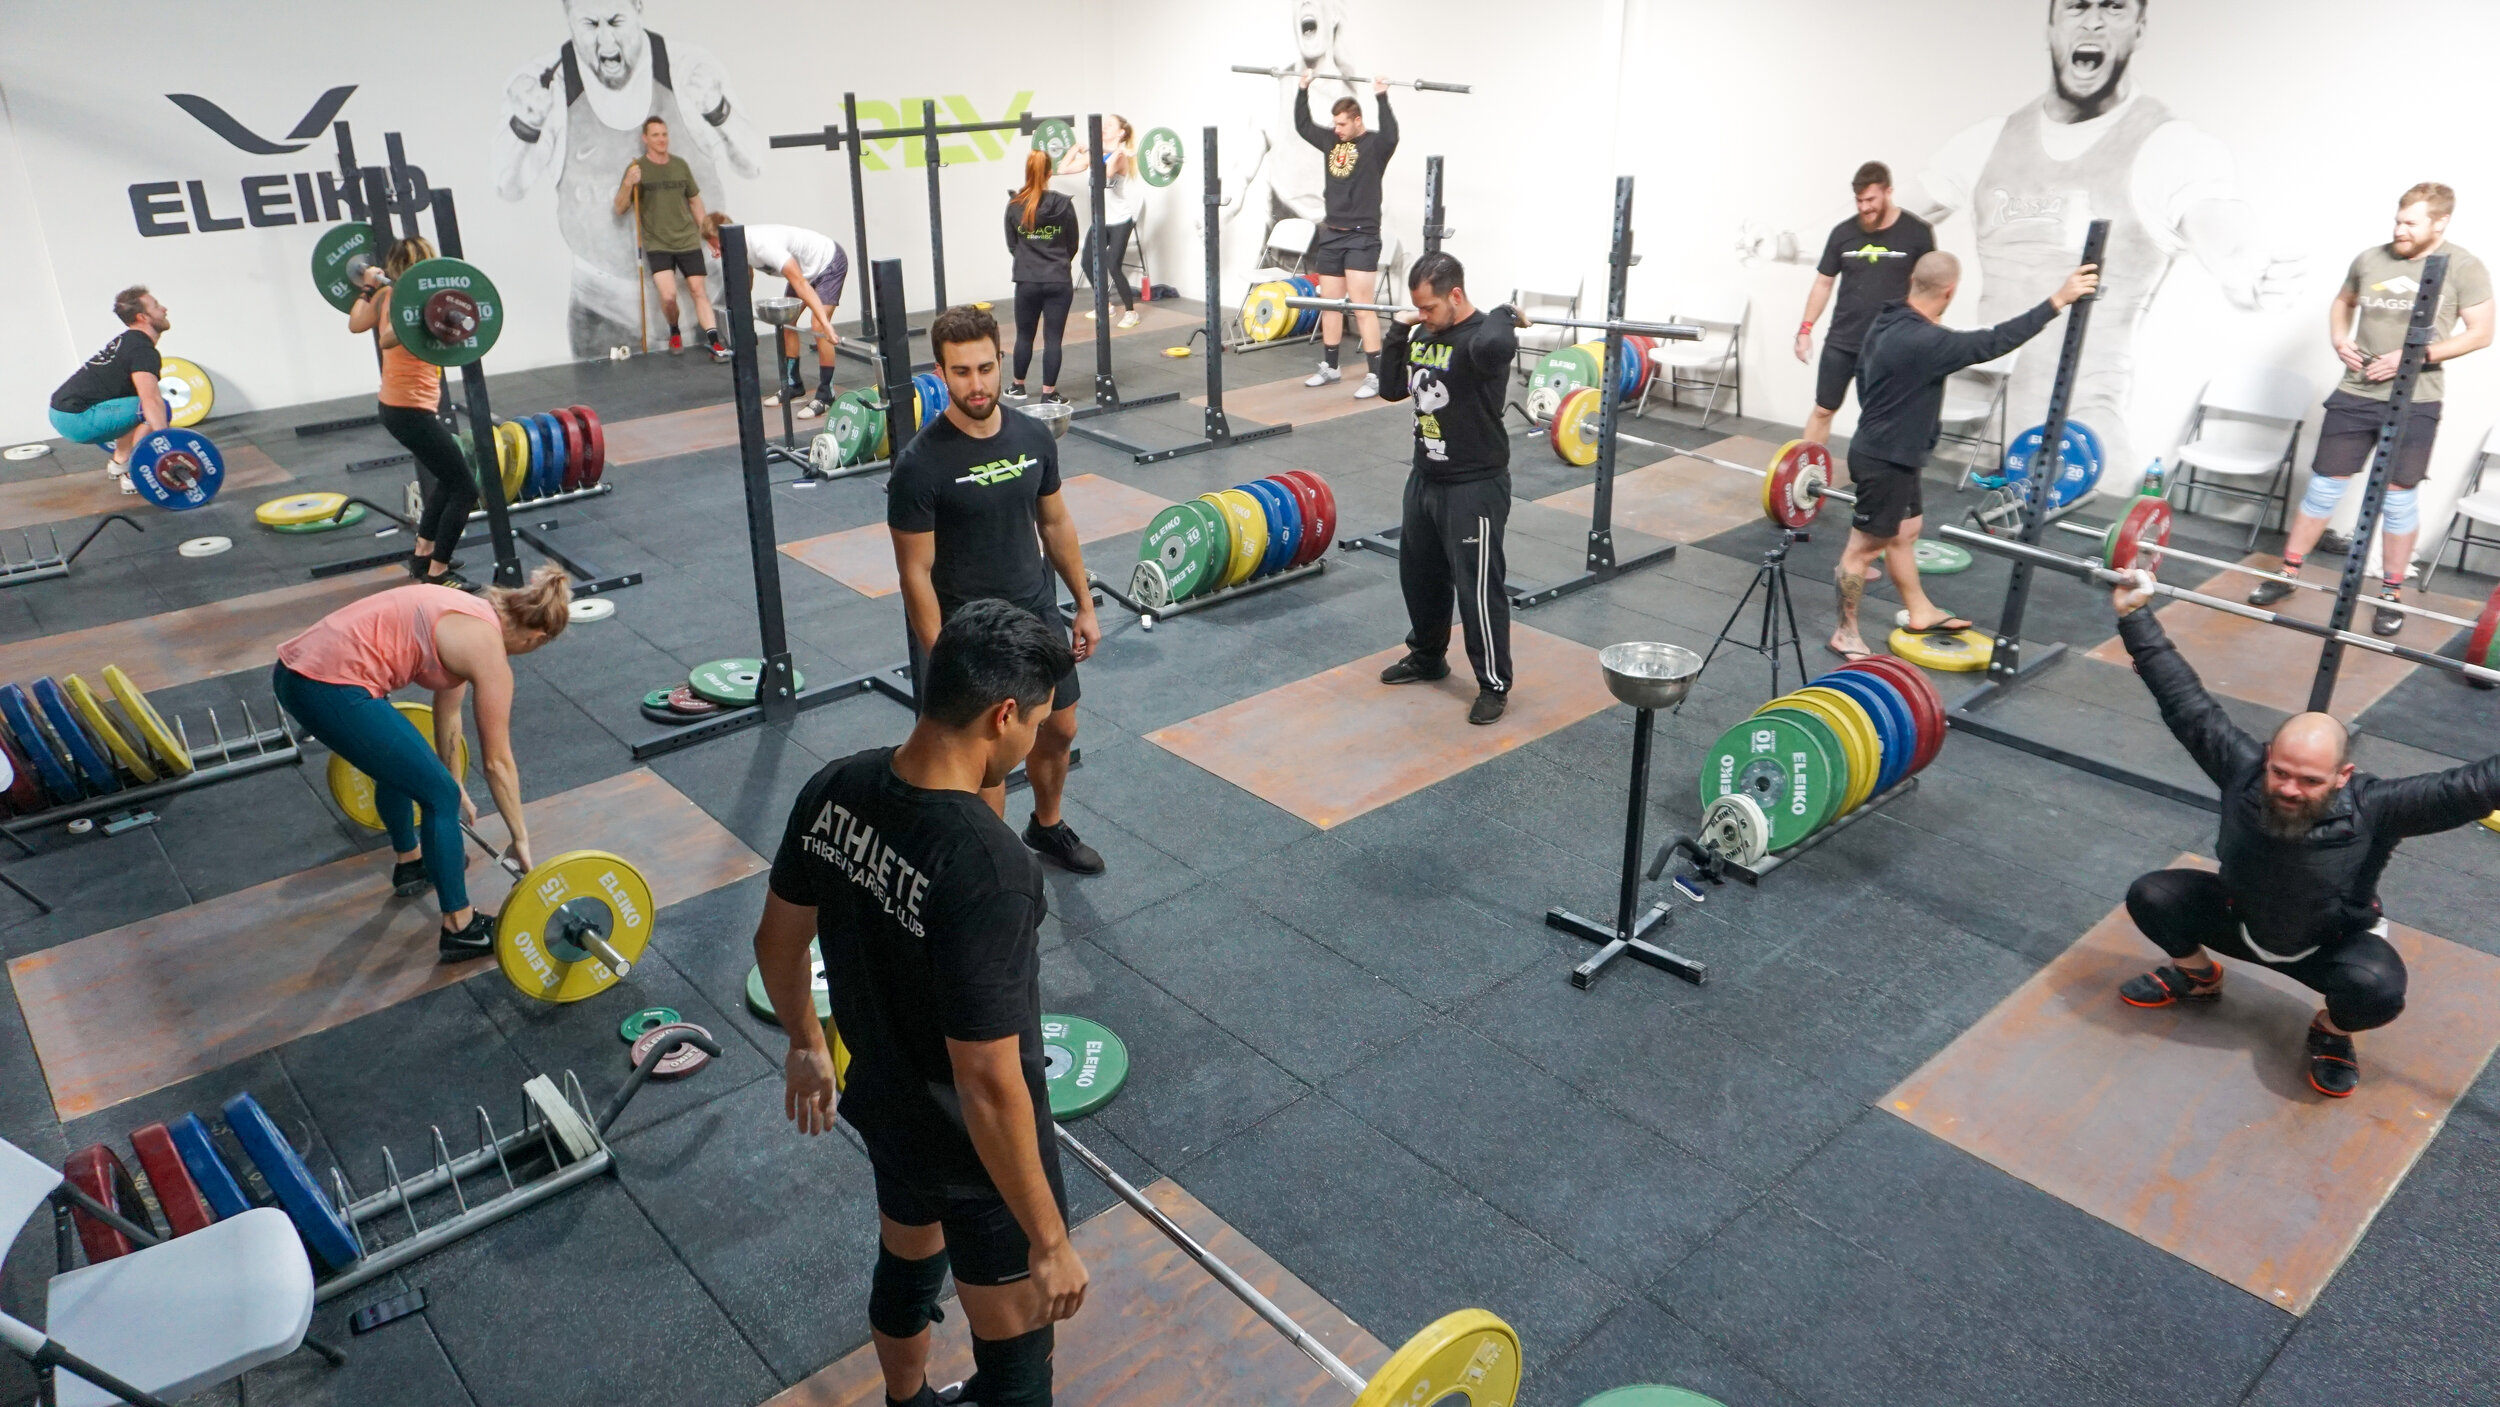 the barbell club - The home of our Olympic Weightlifting and Strength Sessions.